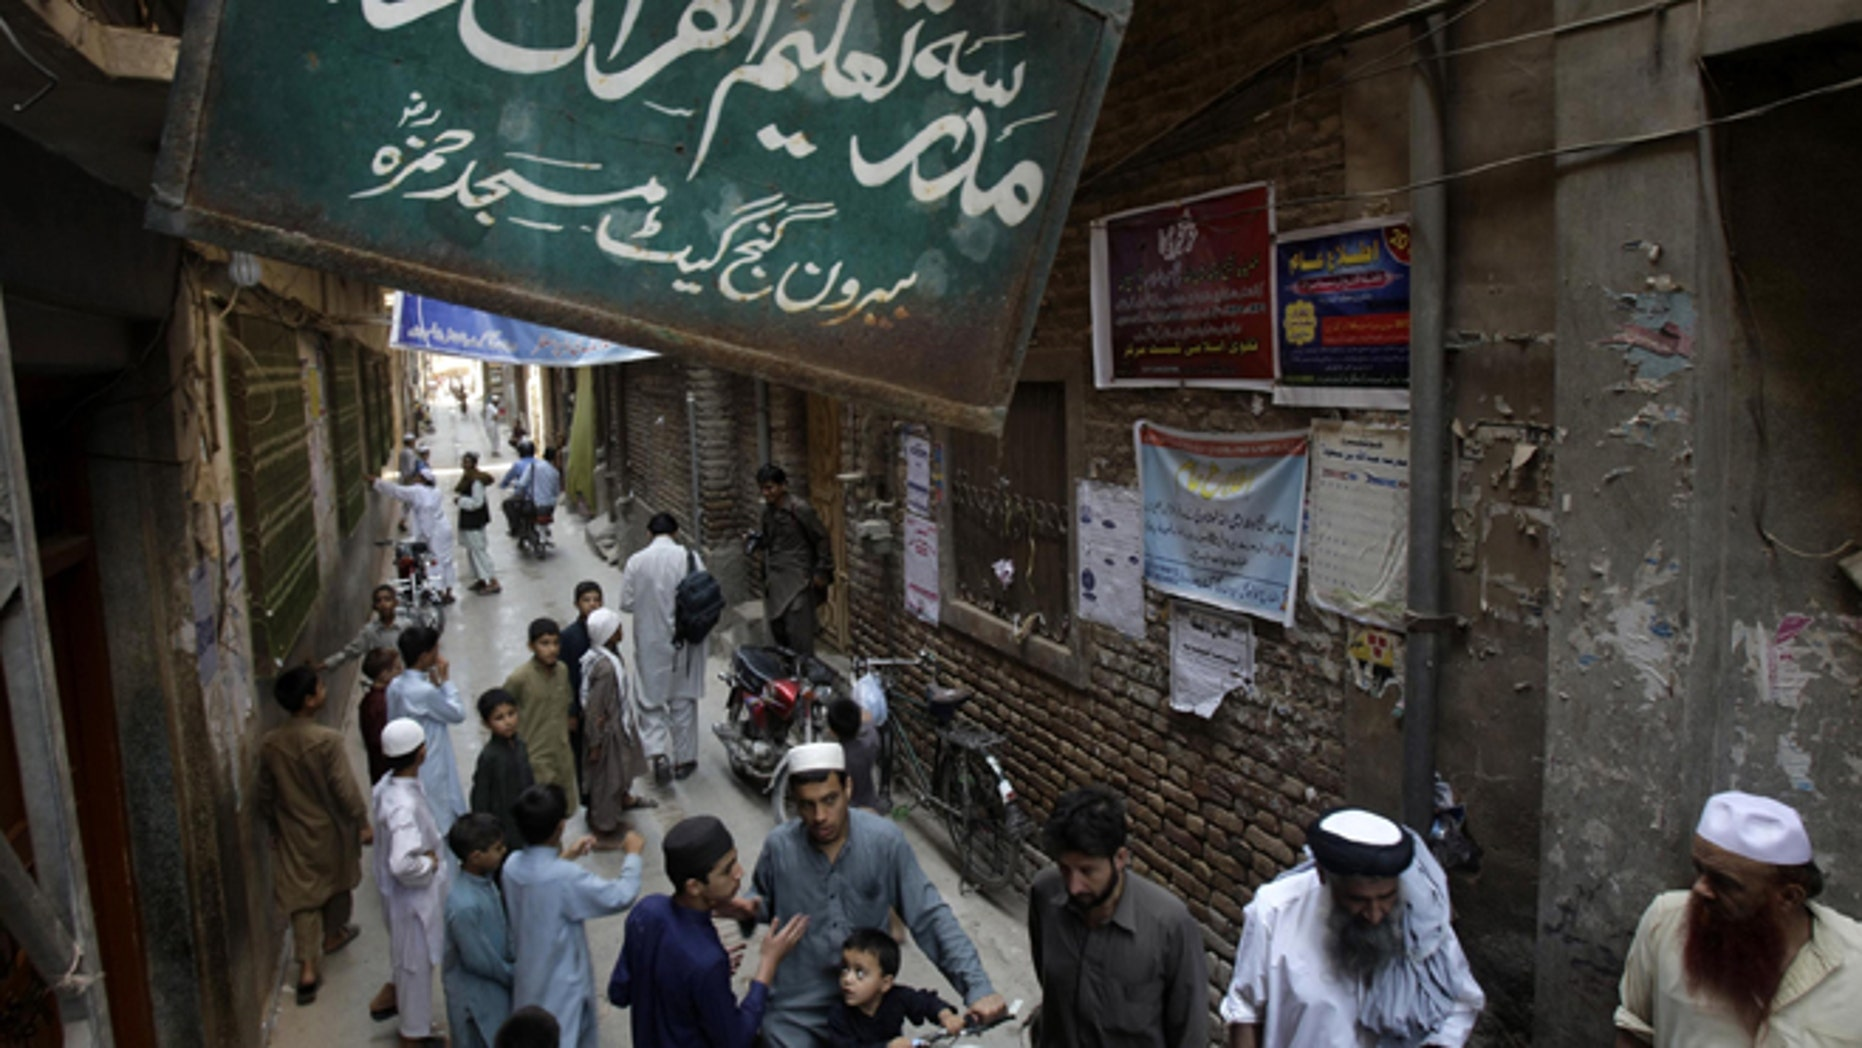 """Aug. 21, 2013: People gather outside the Jamia Taleem-Ul-Quran-Wal-Hadith Madrassa, in Peshawar, Pakistan. The United States has placed unprecedented sanctions on an Islamic school in northwest Pakistan for allegedly training and financing fighters from Al Qaeda and other militant groups. Board on top reads """"school for Koran and Hadith studies."""""""